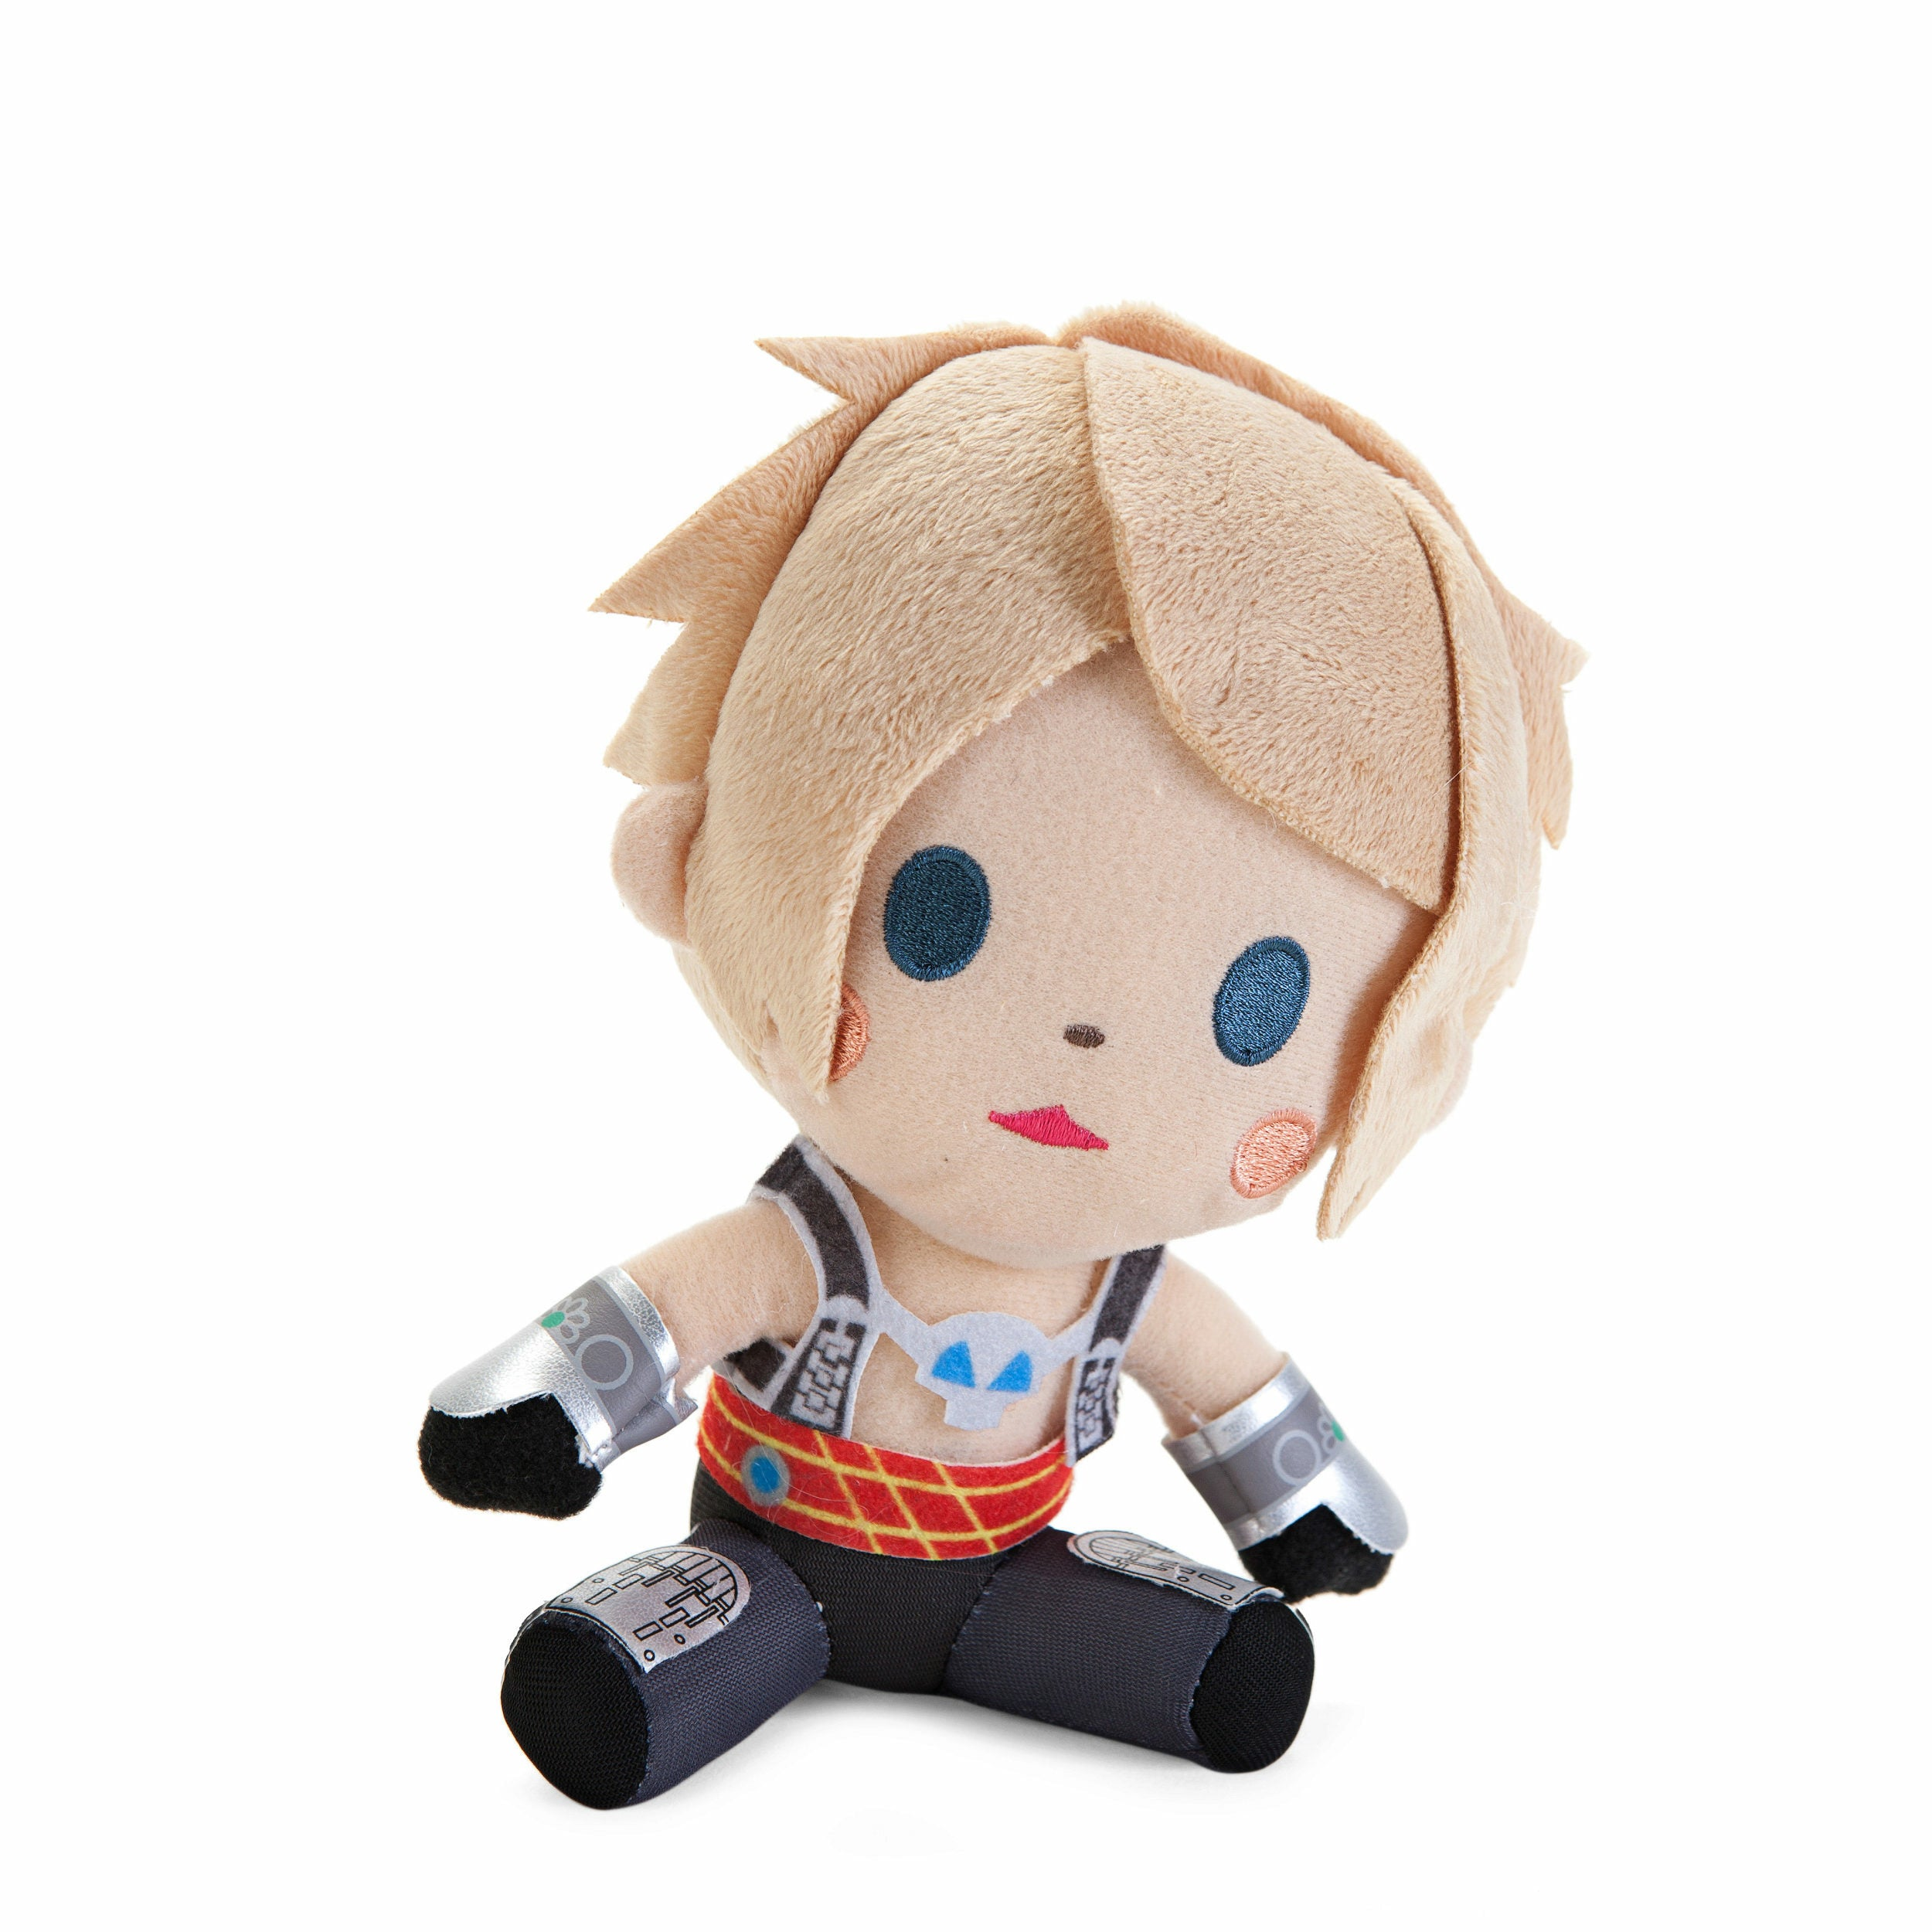 Final Fantasy All Stars Deformed Plush Vol. 3 Vaan Plush Toy